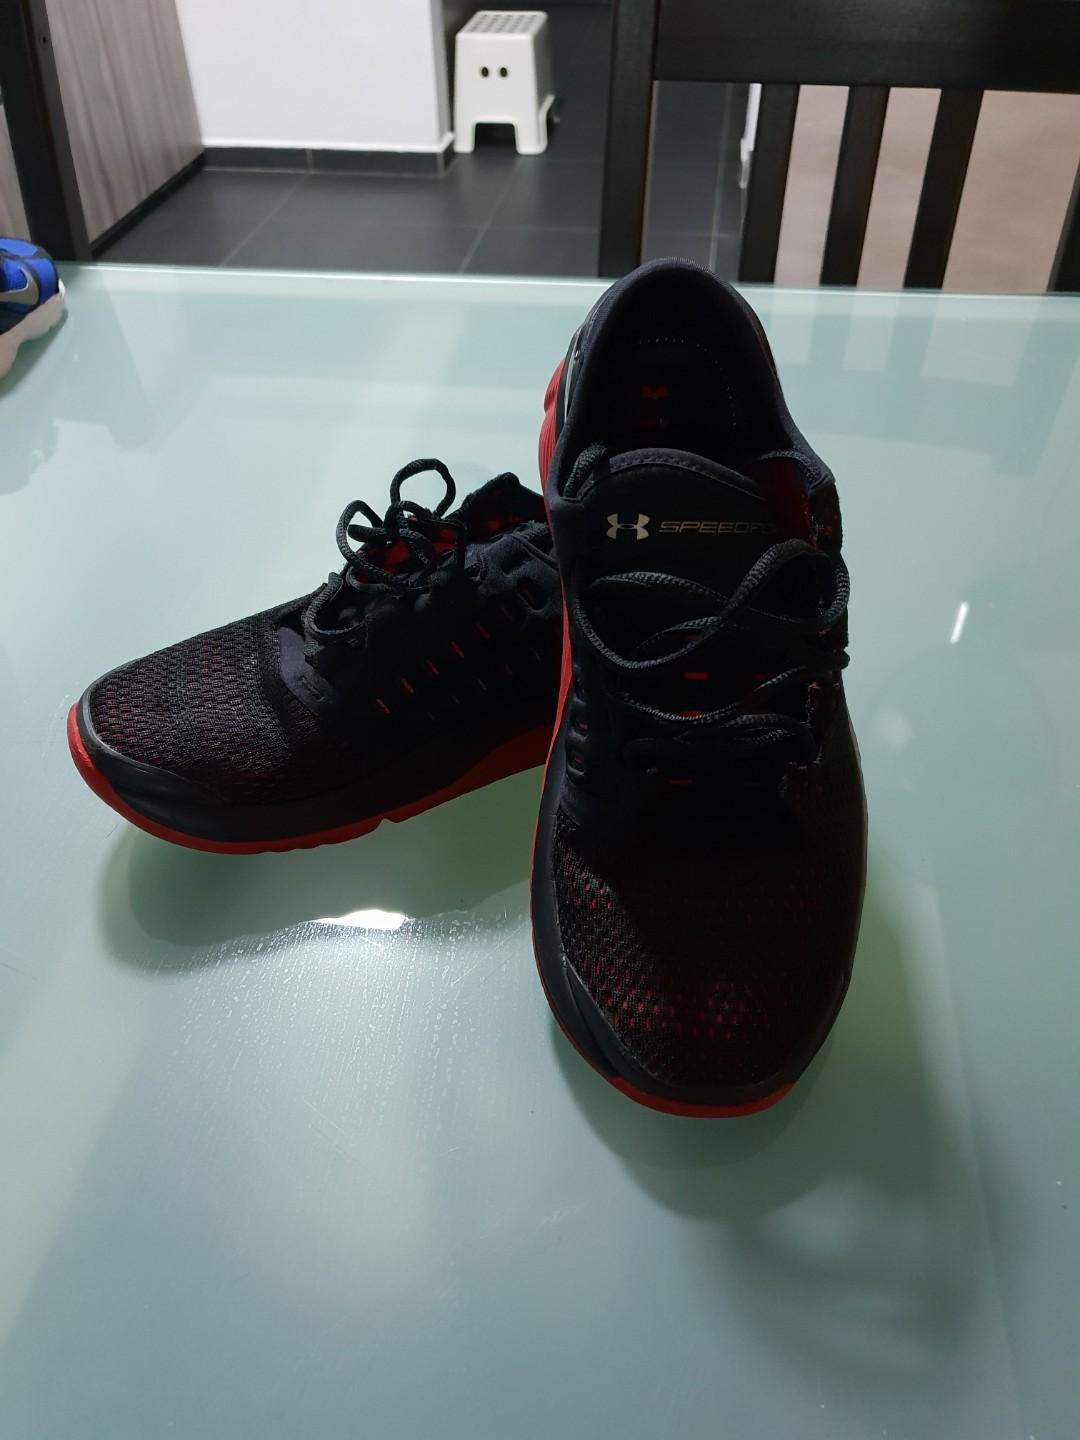 Under Armour youth shoe, Men's Fashion